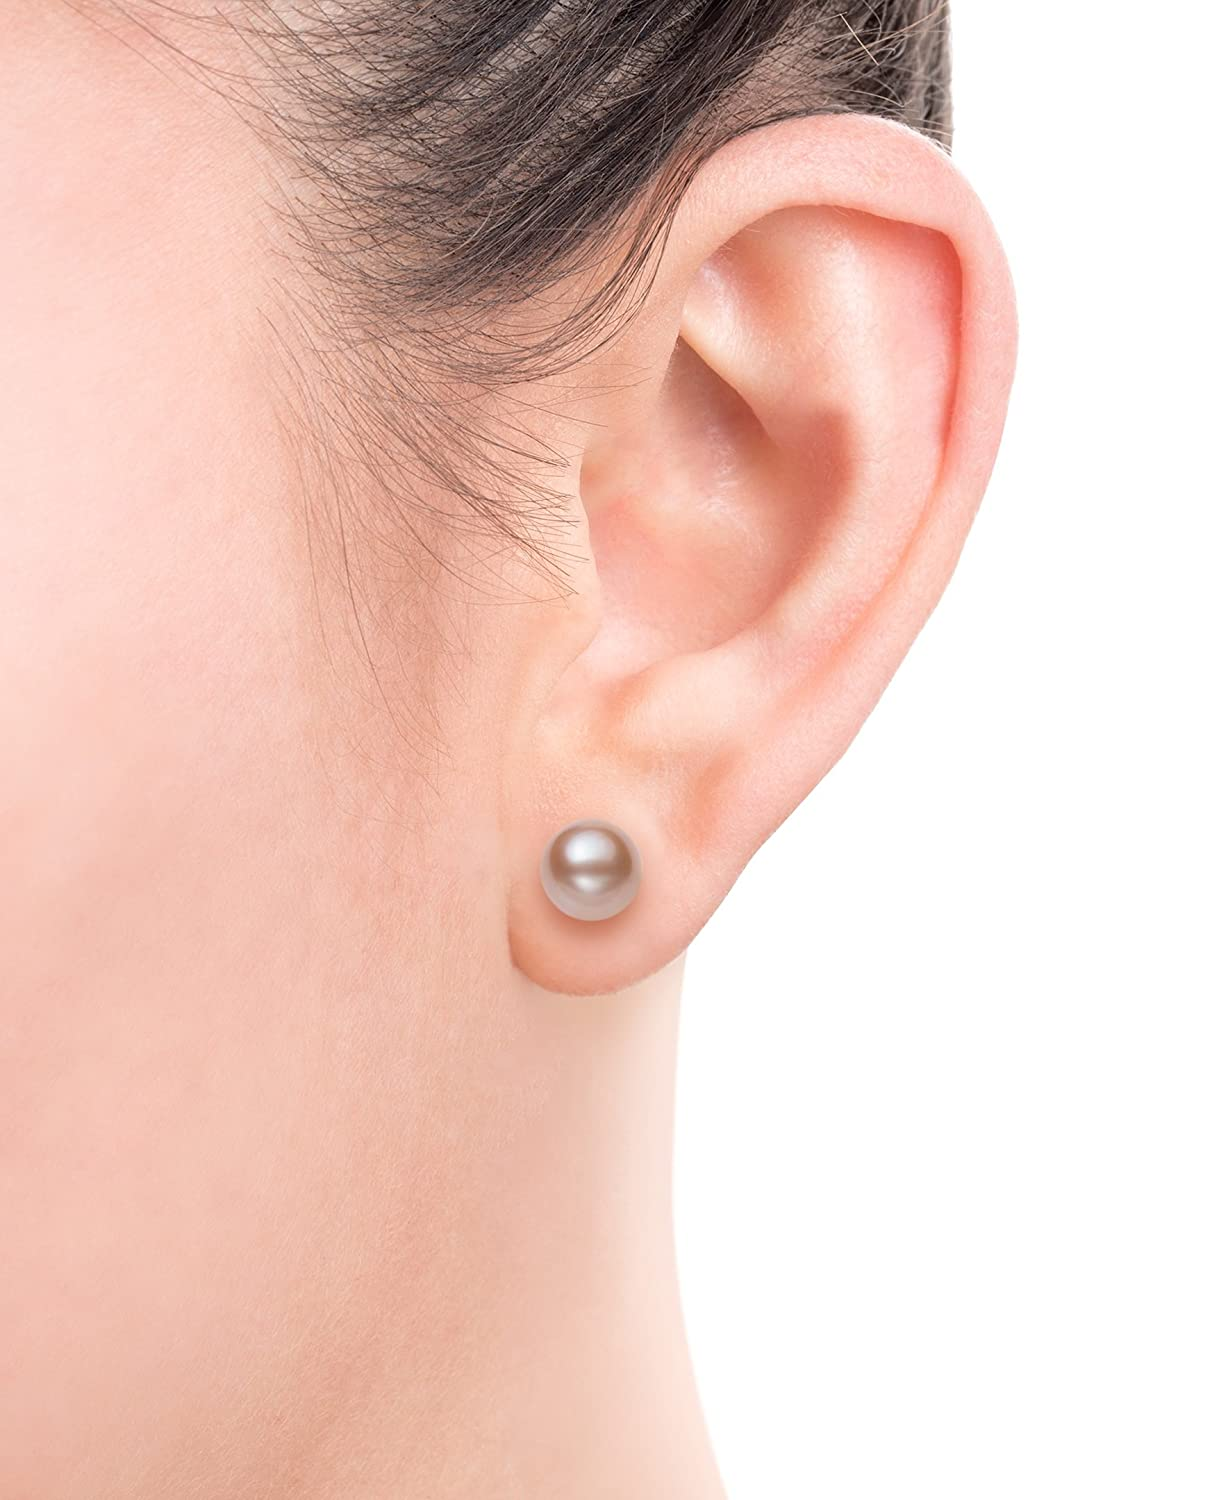 14K Gold AAA Quality Natural Pink Cultured Freshwater Pearl Stud Earrings